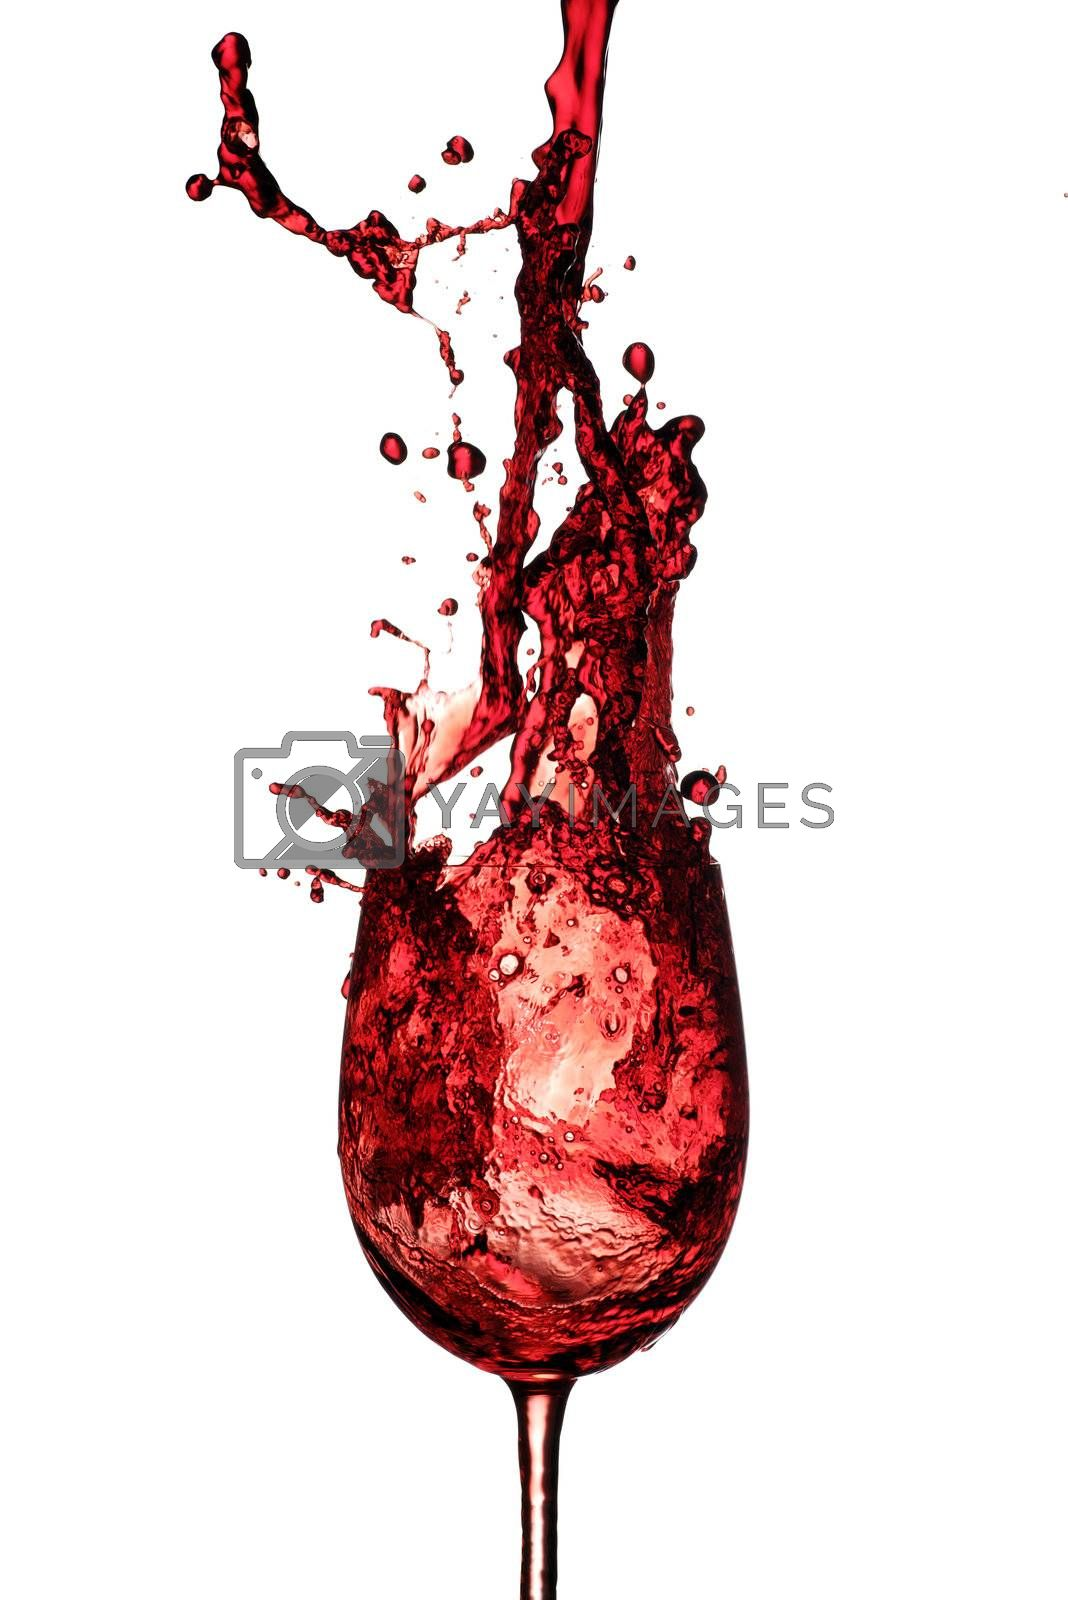 red wine being poured in to a wine glass from a height